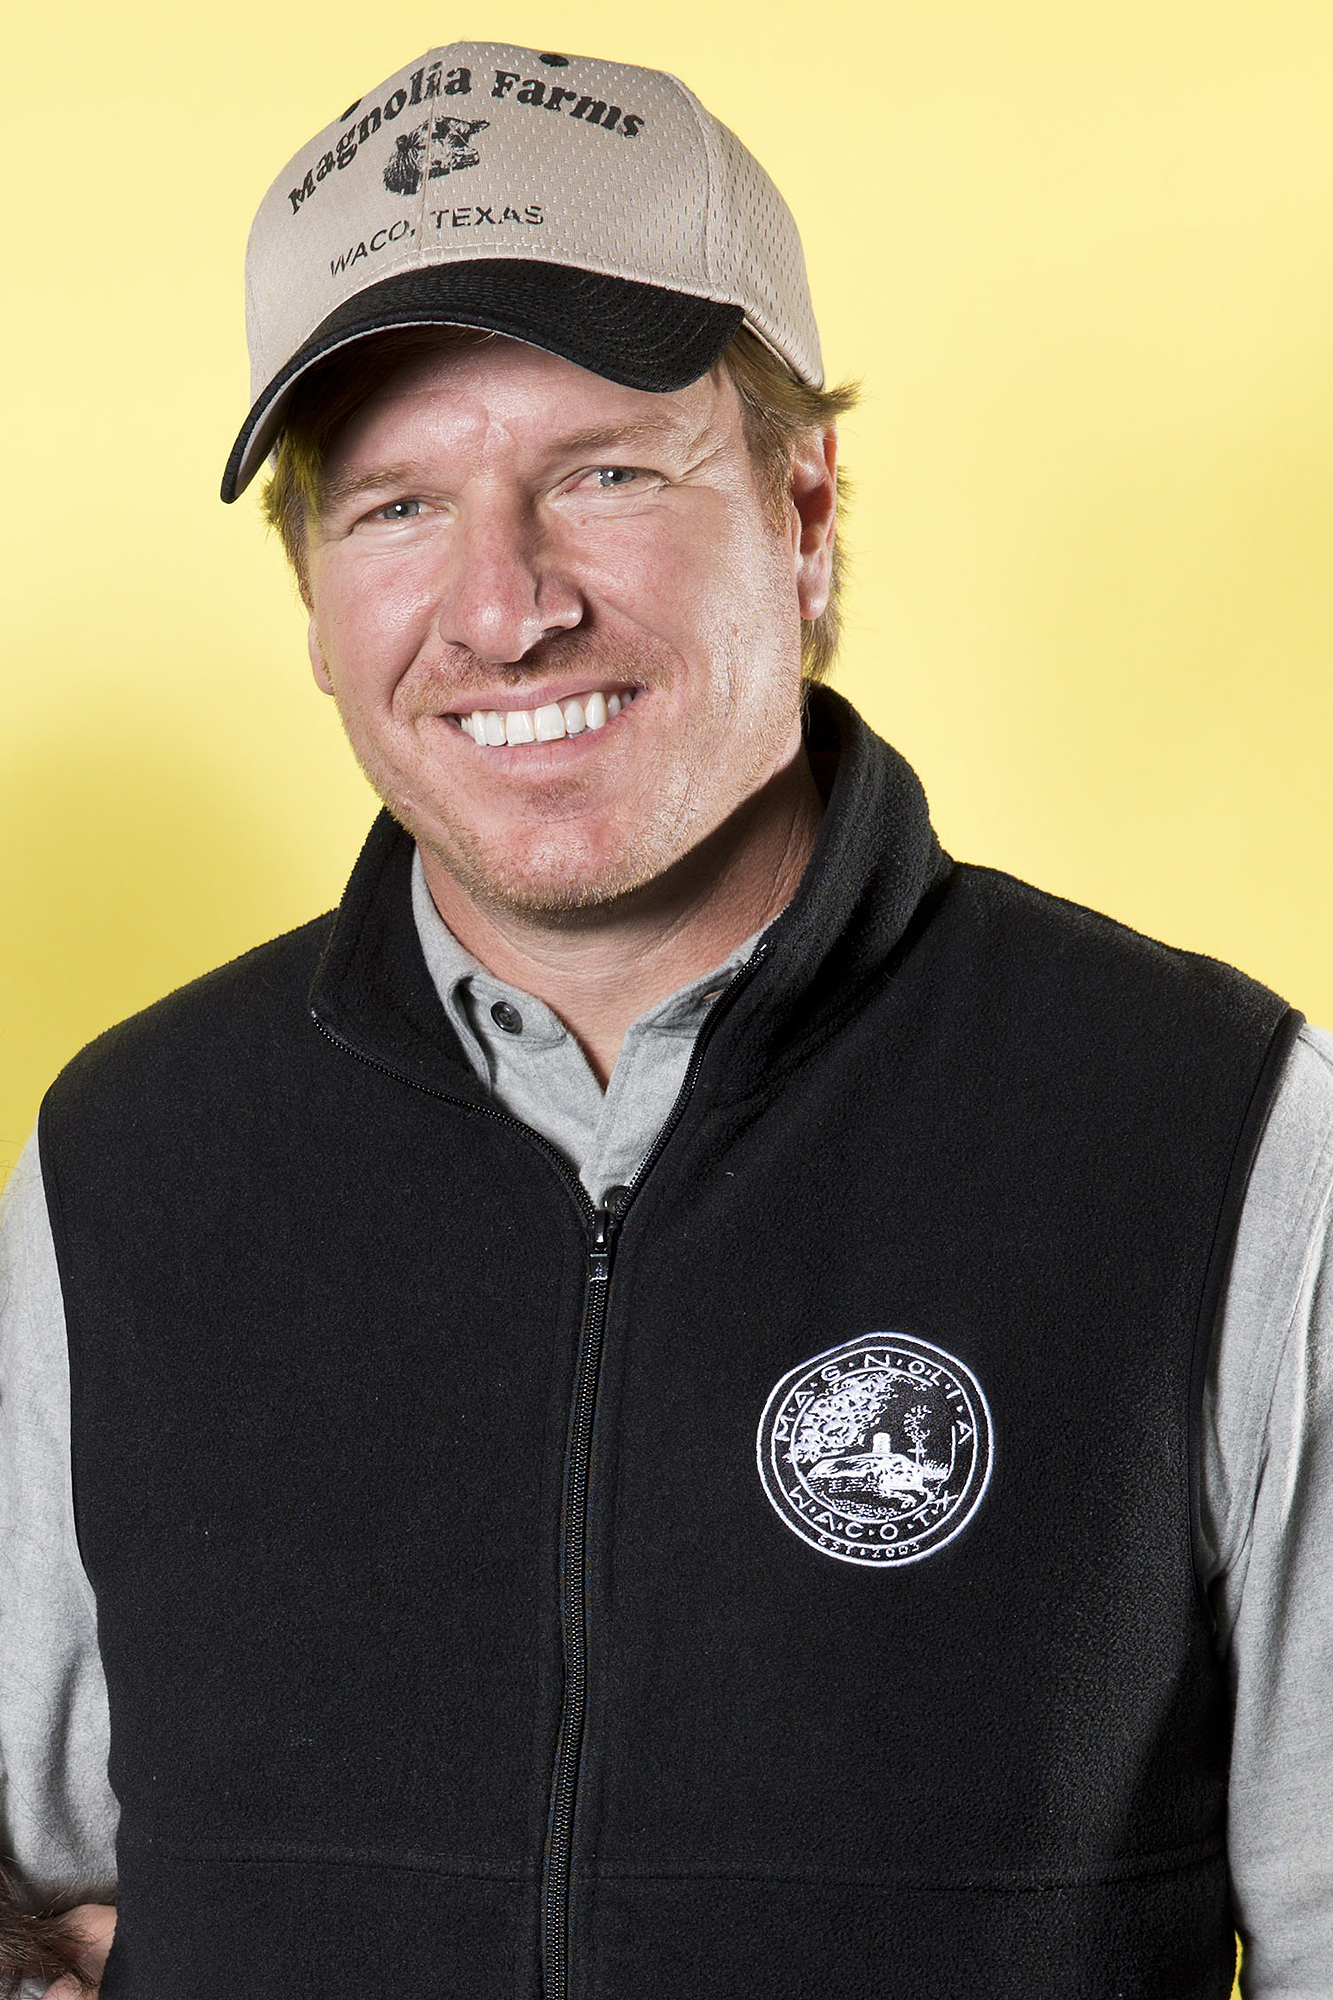 Chip Gaines of Fixer Upper Is Getting His Own Store